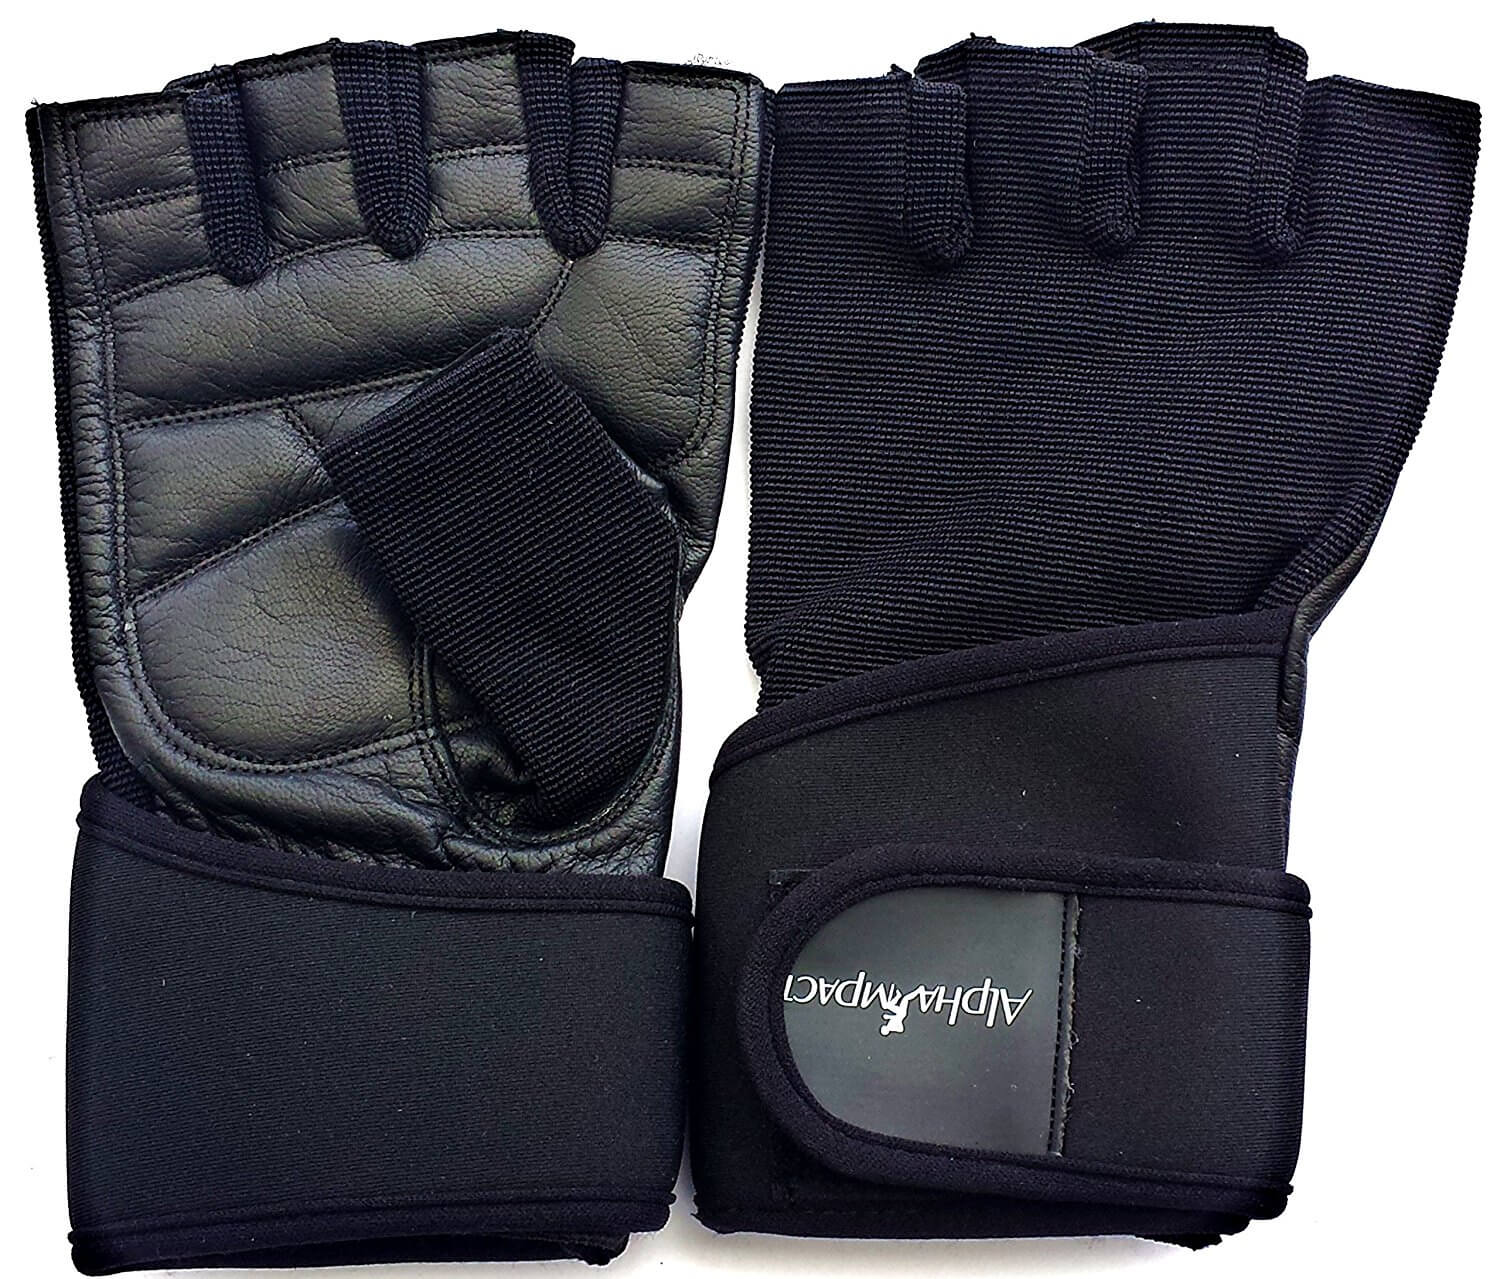 Alpha Impact Weight Lifting Gloves with Premium Leather Palm and Adjustable Wrist Support